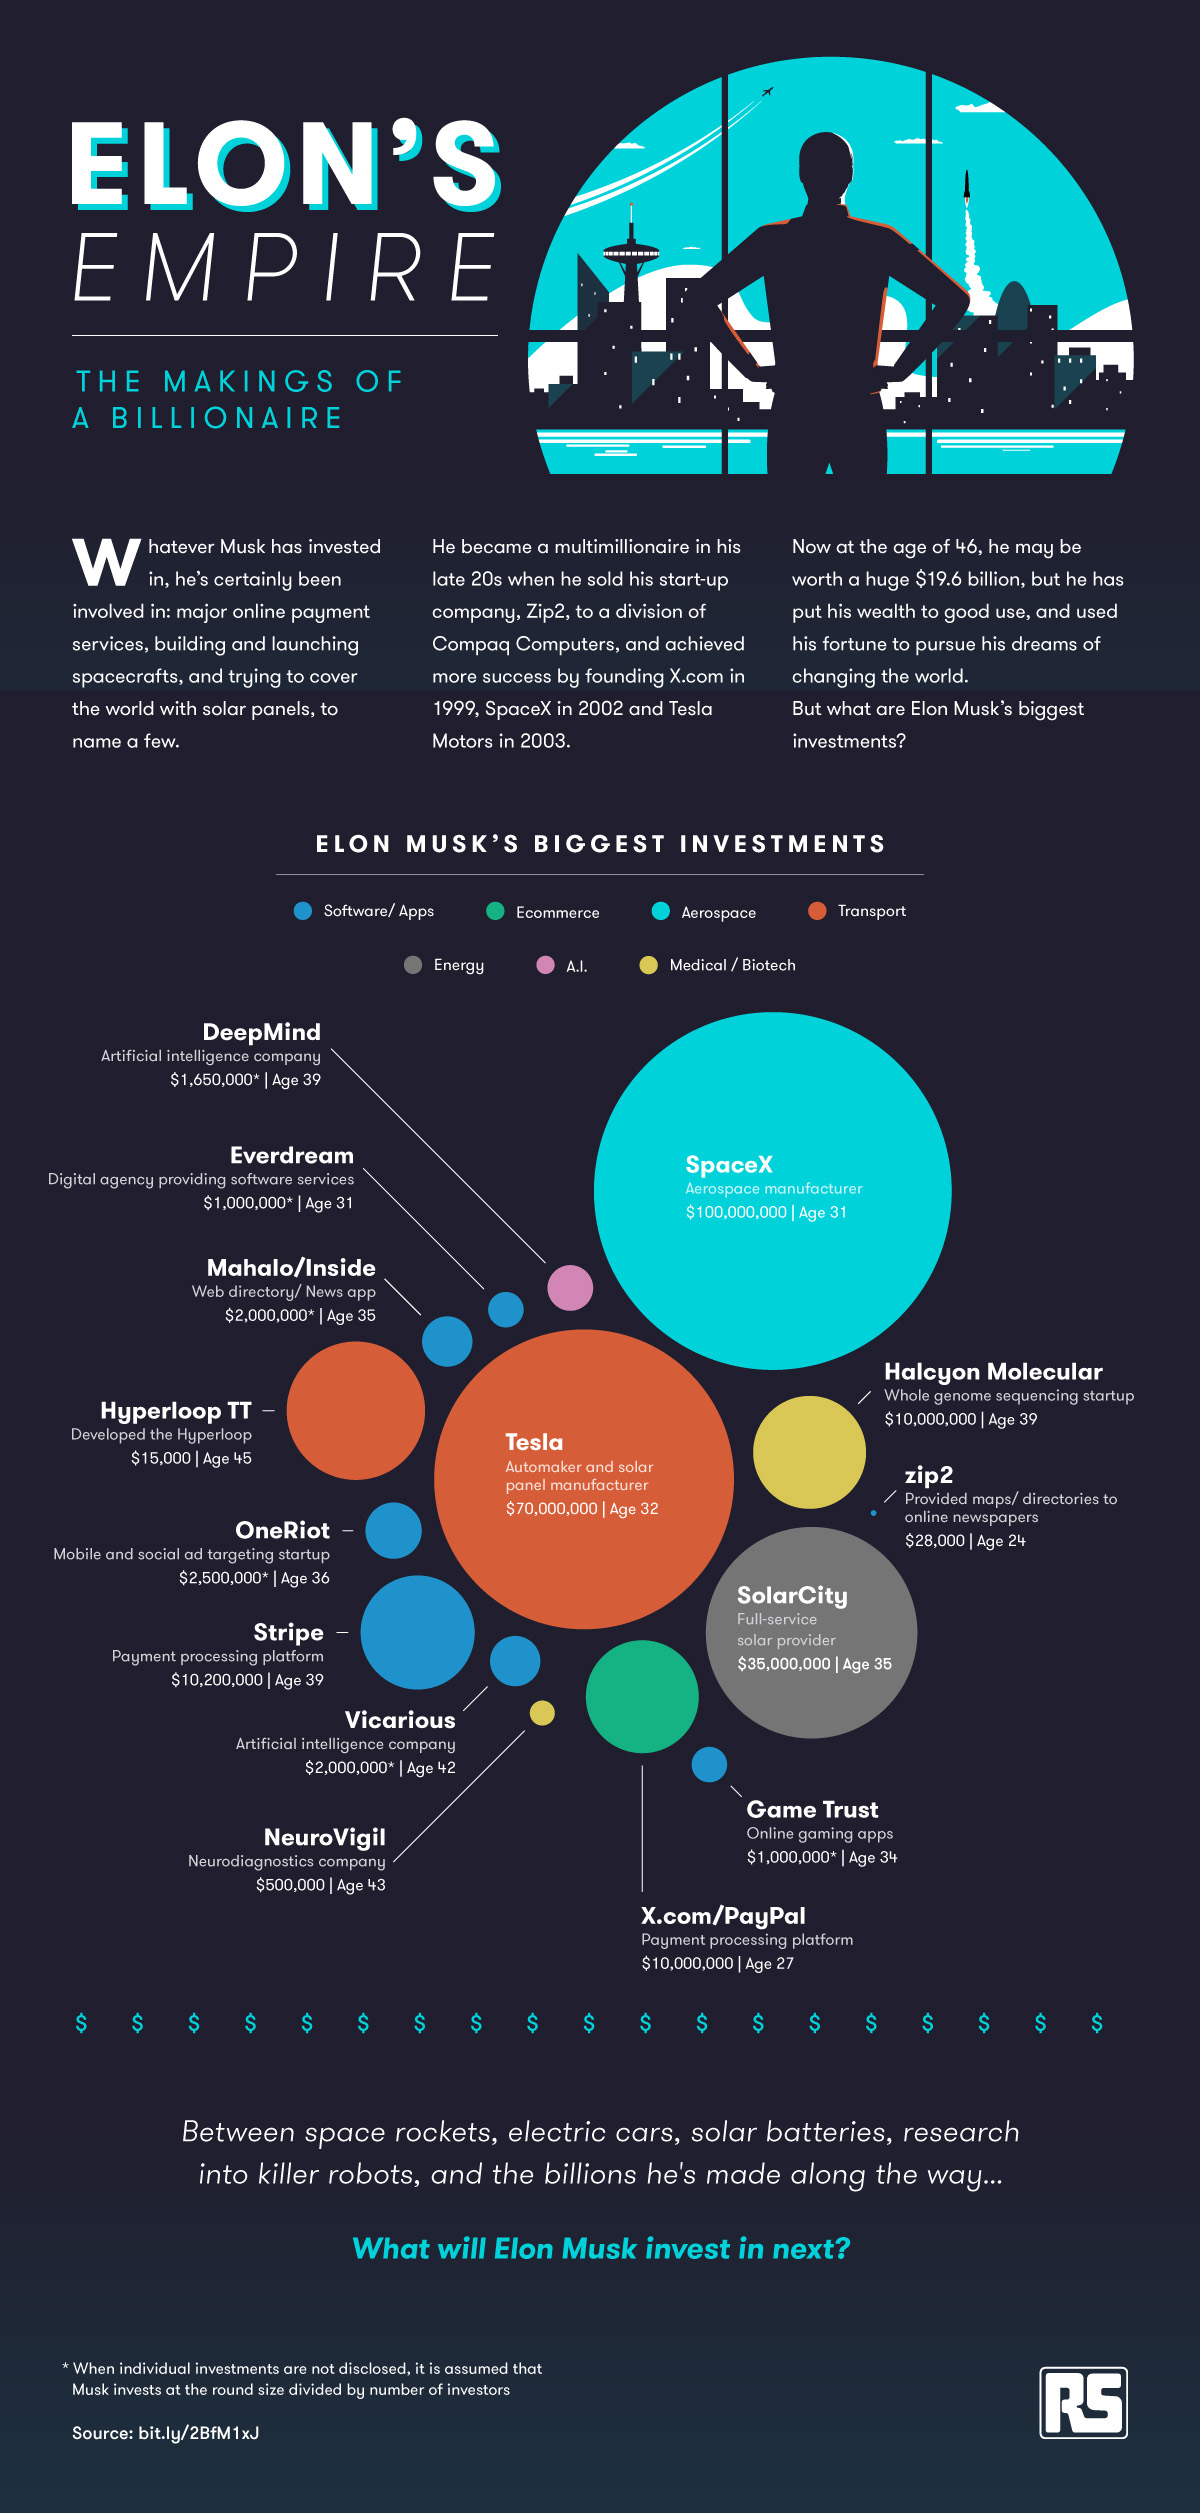 The Empire Of Elon Musk [Infographic]